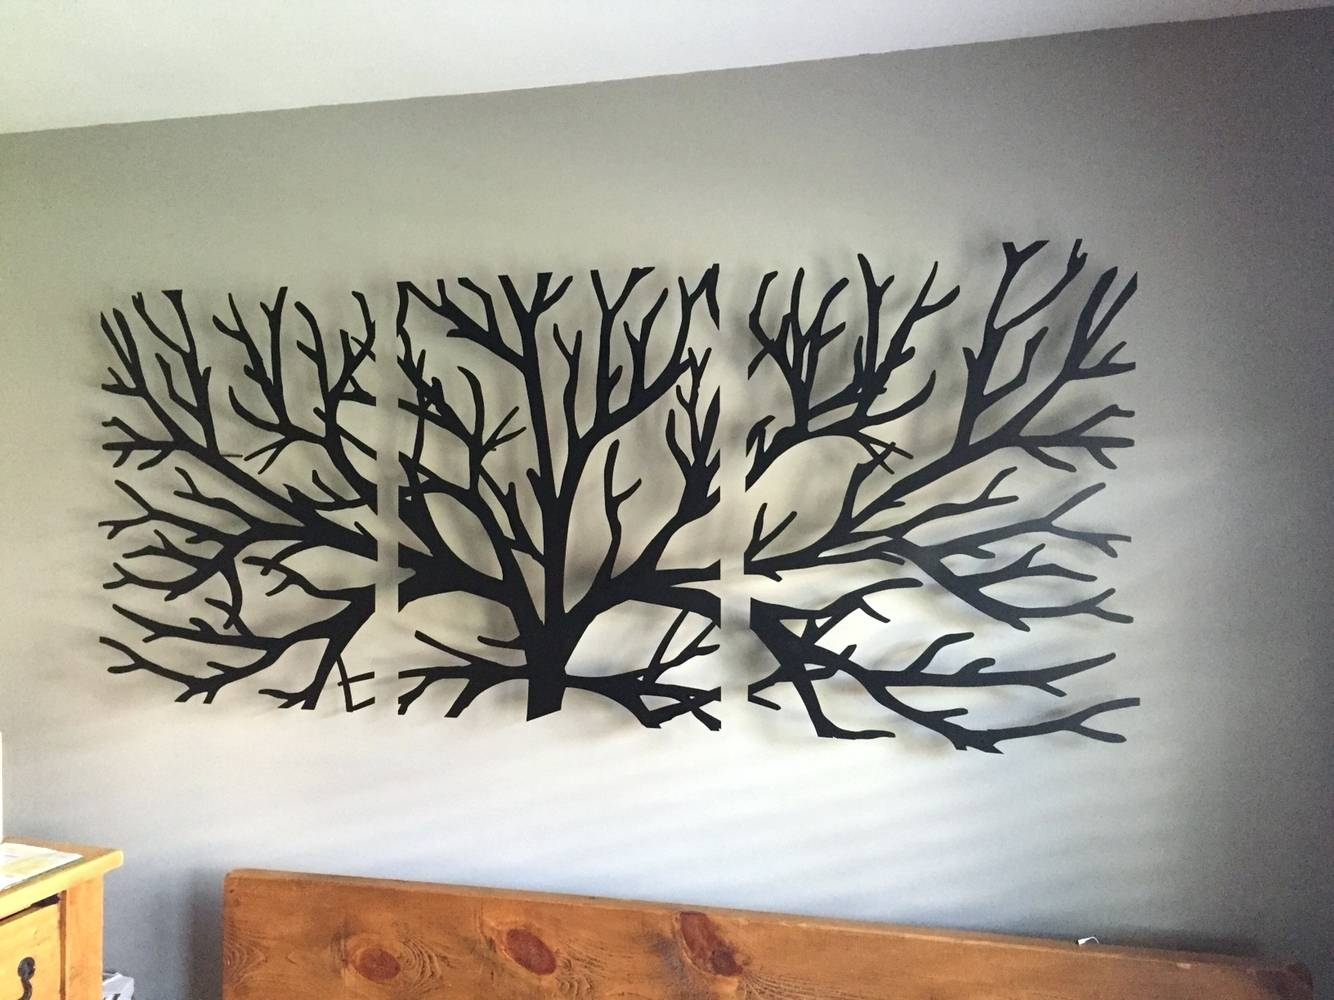 Wall Arts ~ Wall Pops Silhouette Tree Wall Art Decal Kit 129 Piece Pertaining To 2017 Red Tree Metal Wall Art (View 14 of 20)